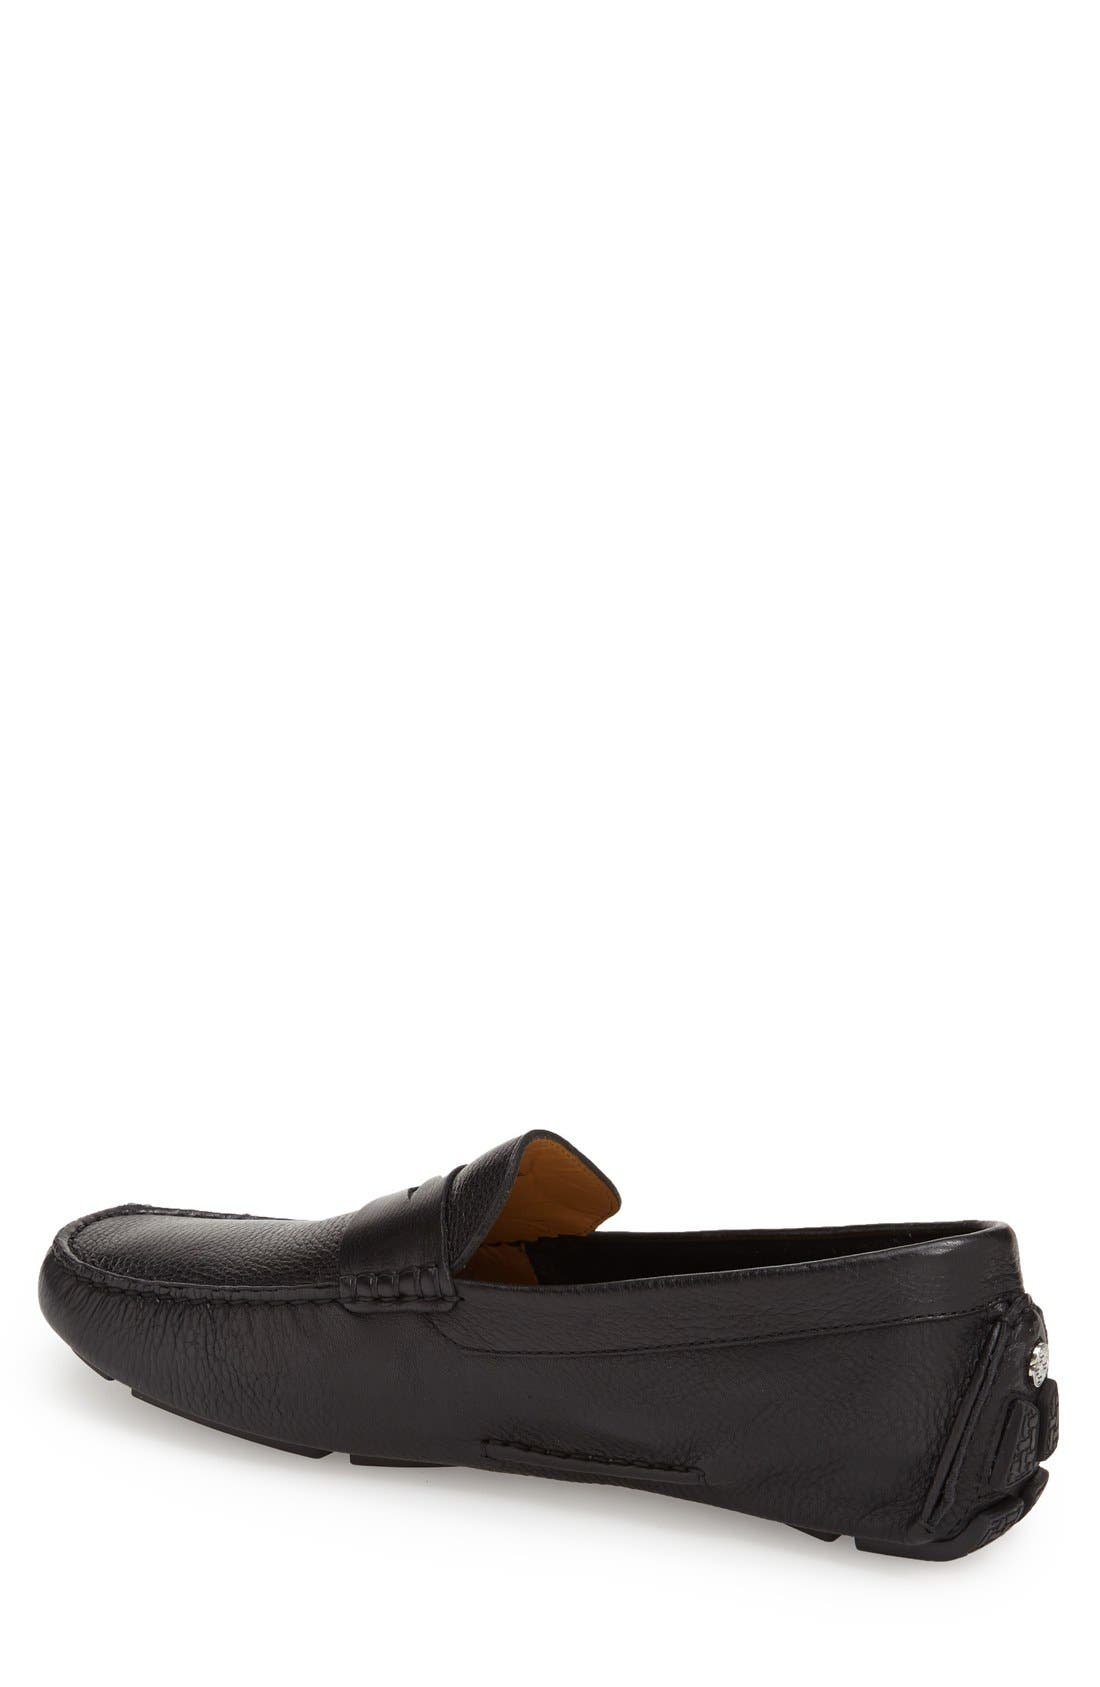 'Howland' Penny Loafer,                             Alternate thumbnail 12, color,                             BLACK TUMBLED